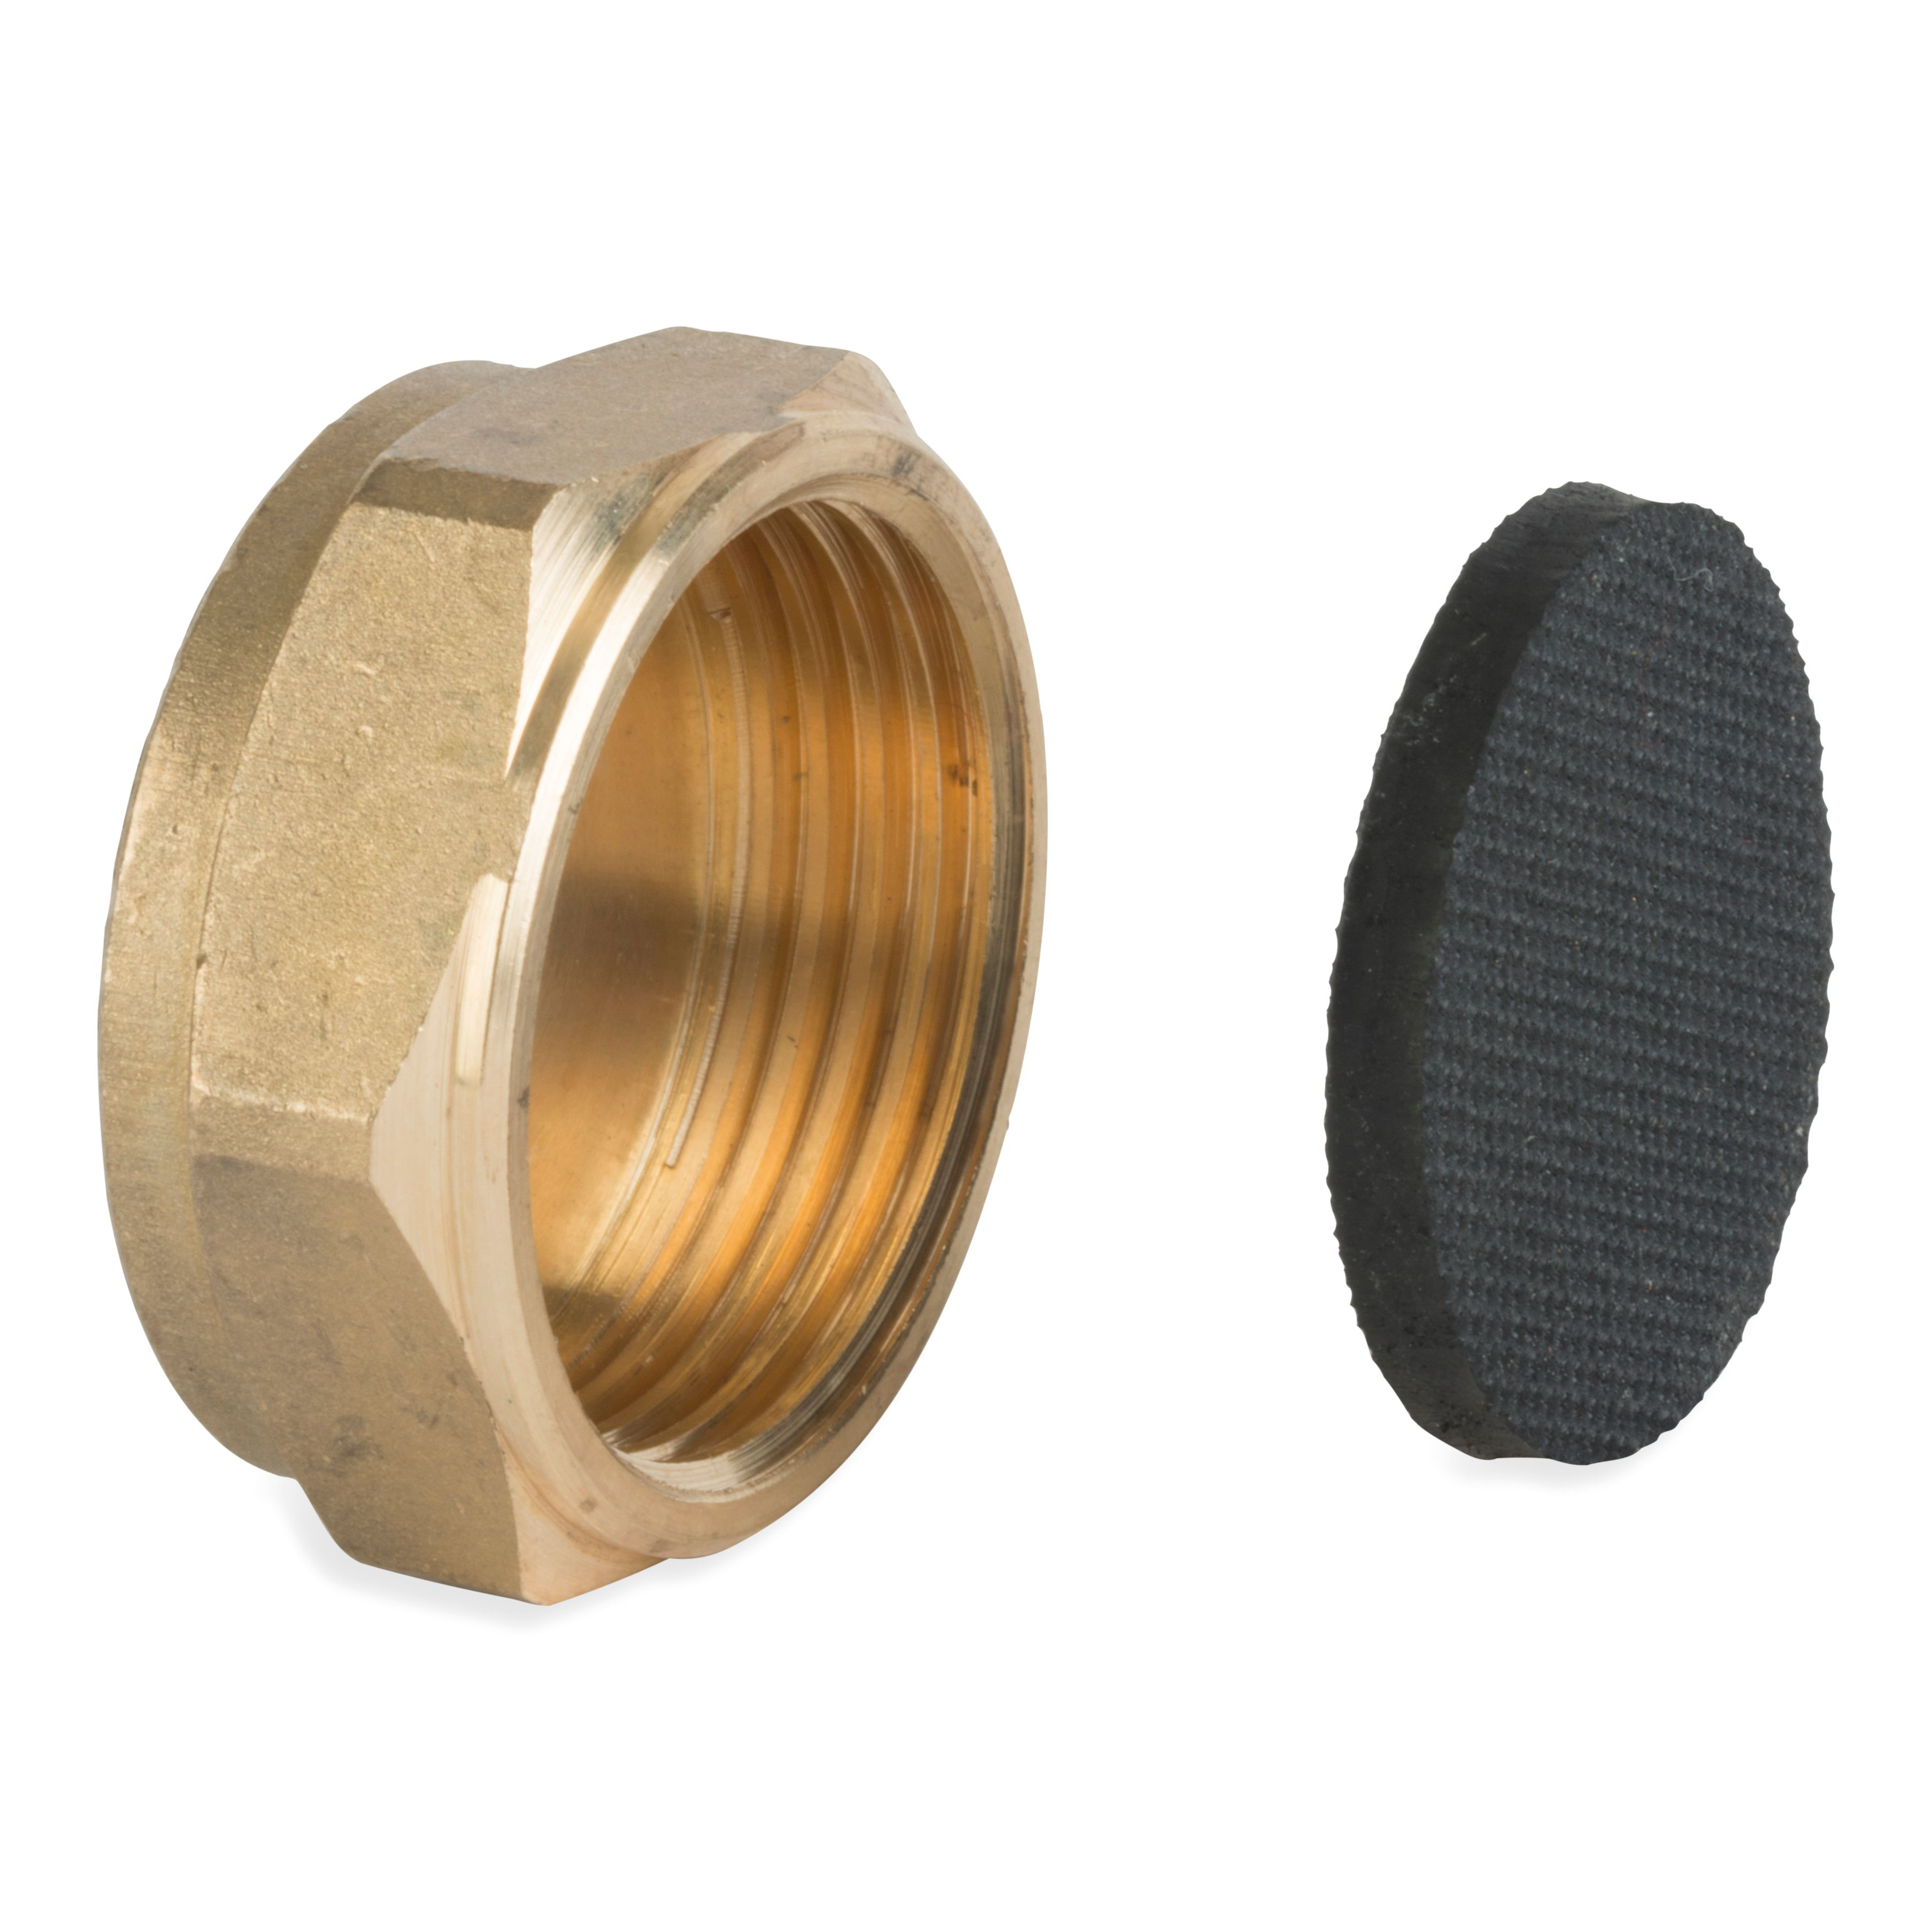 Product P163B, BLANK NUT WITH WASHER